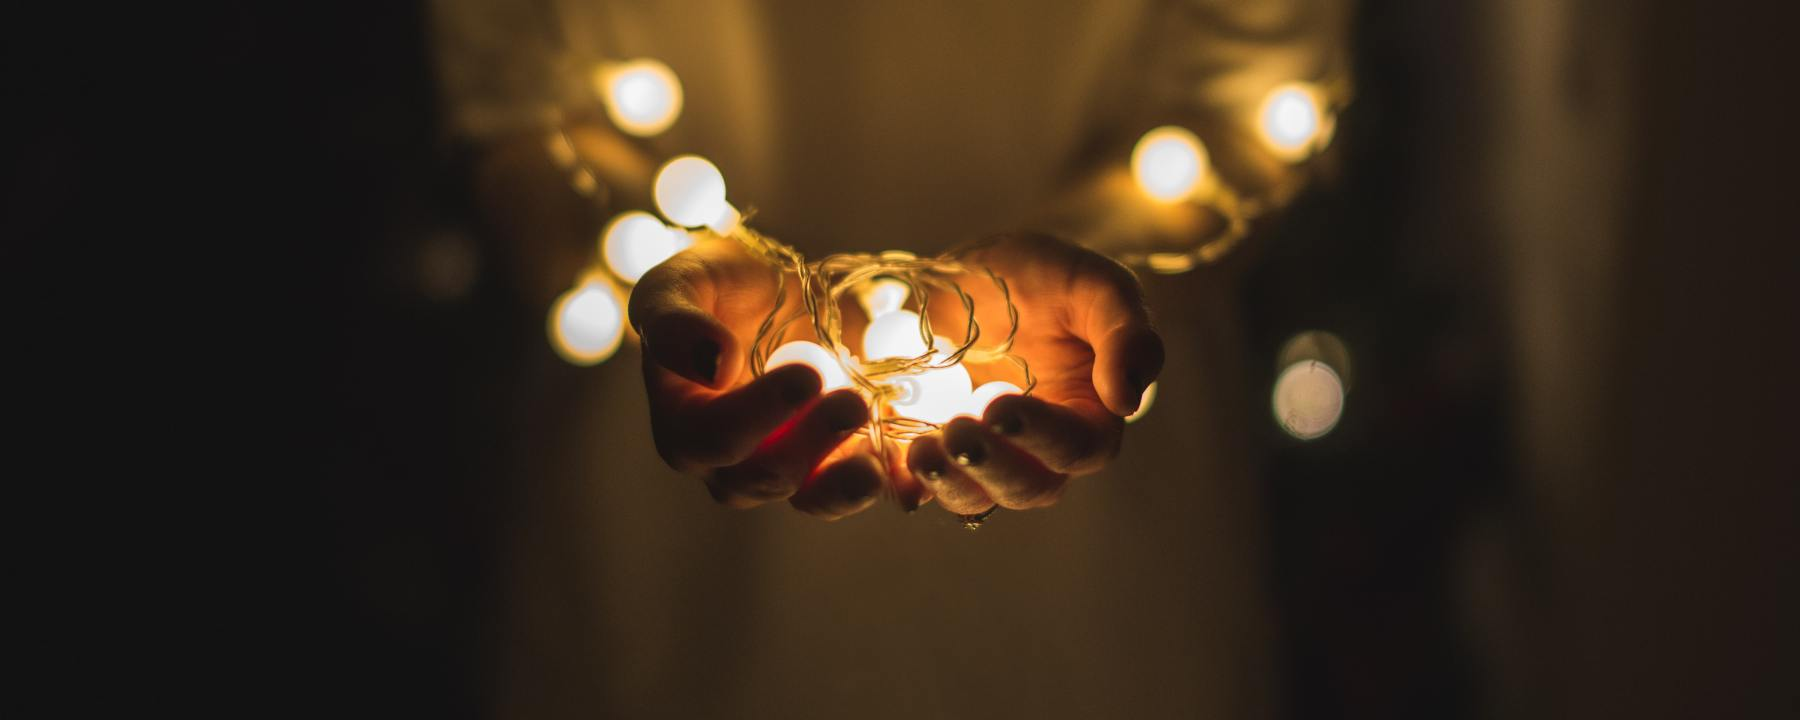 hands filled with light